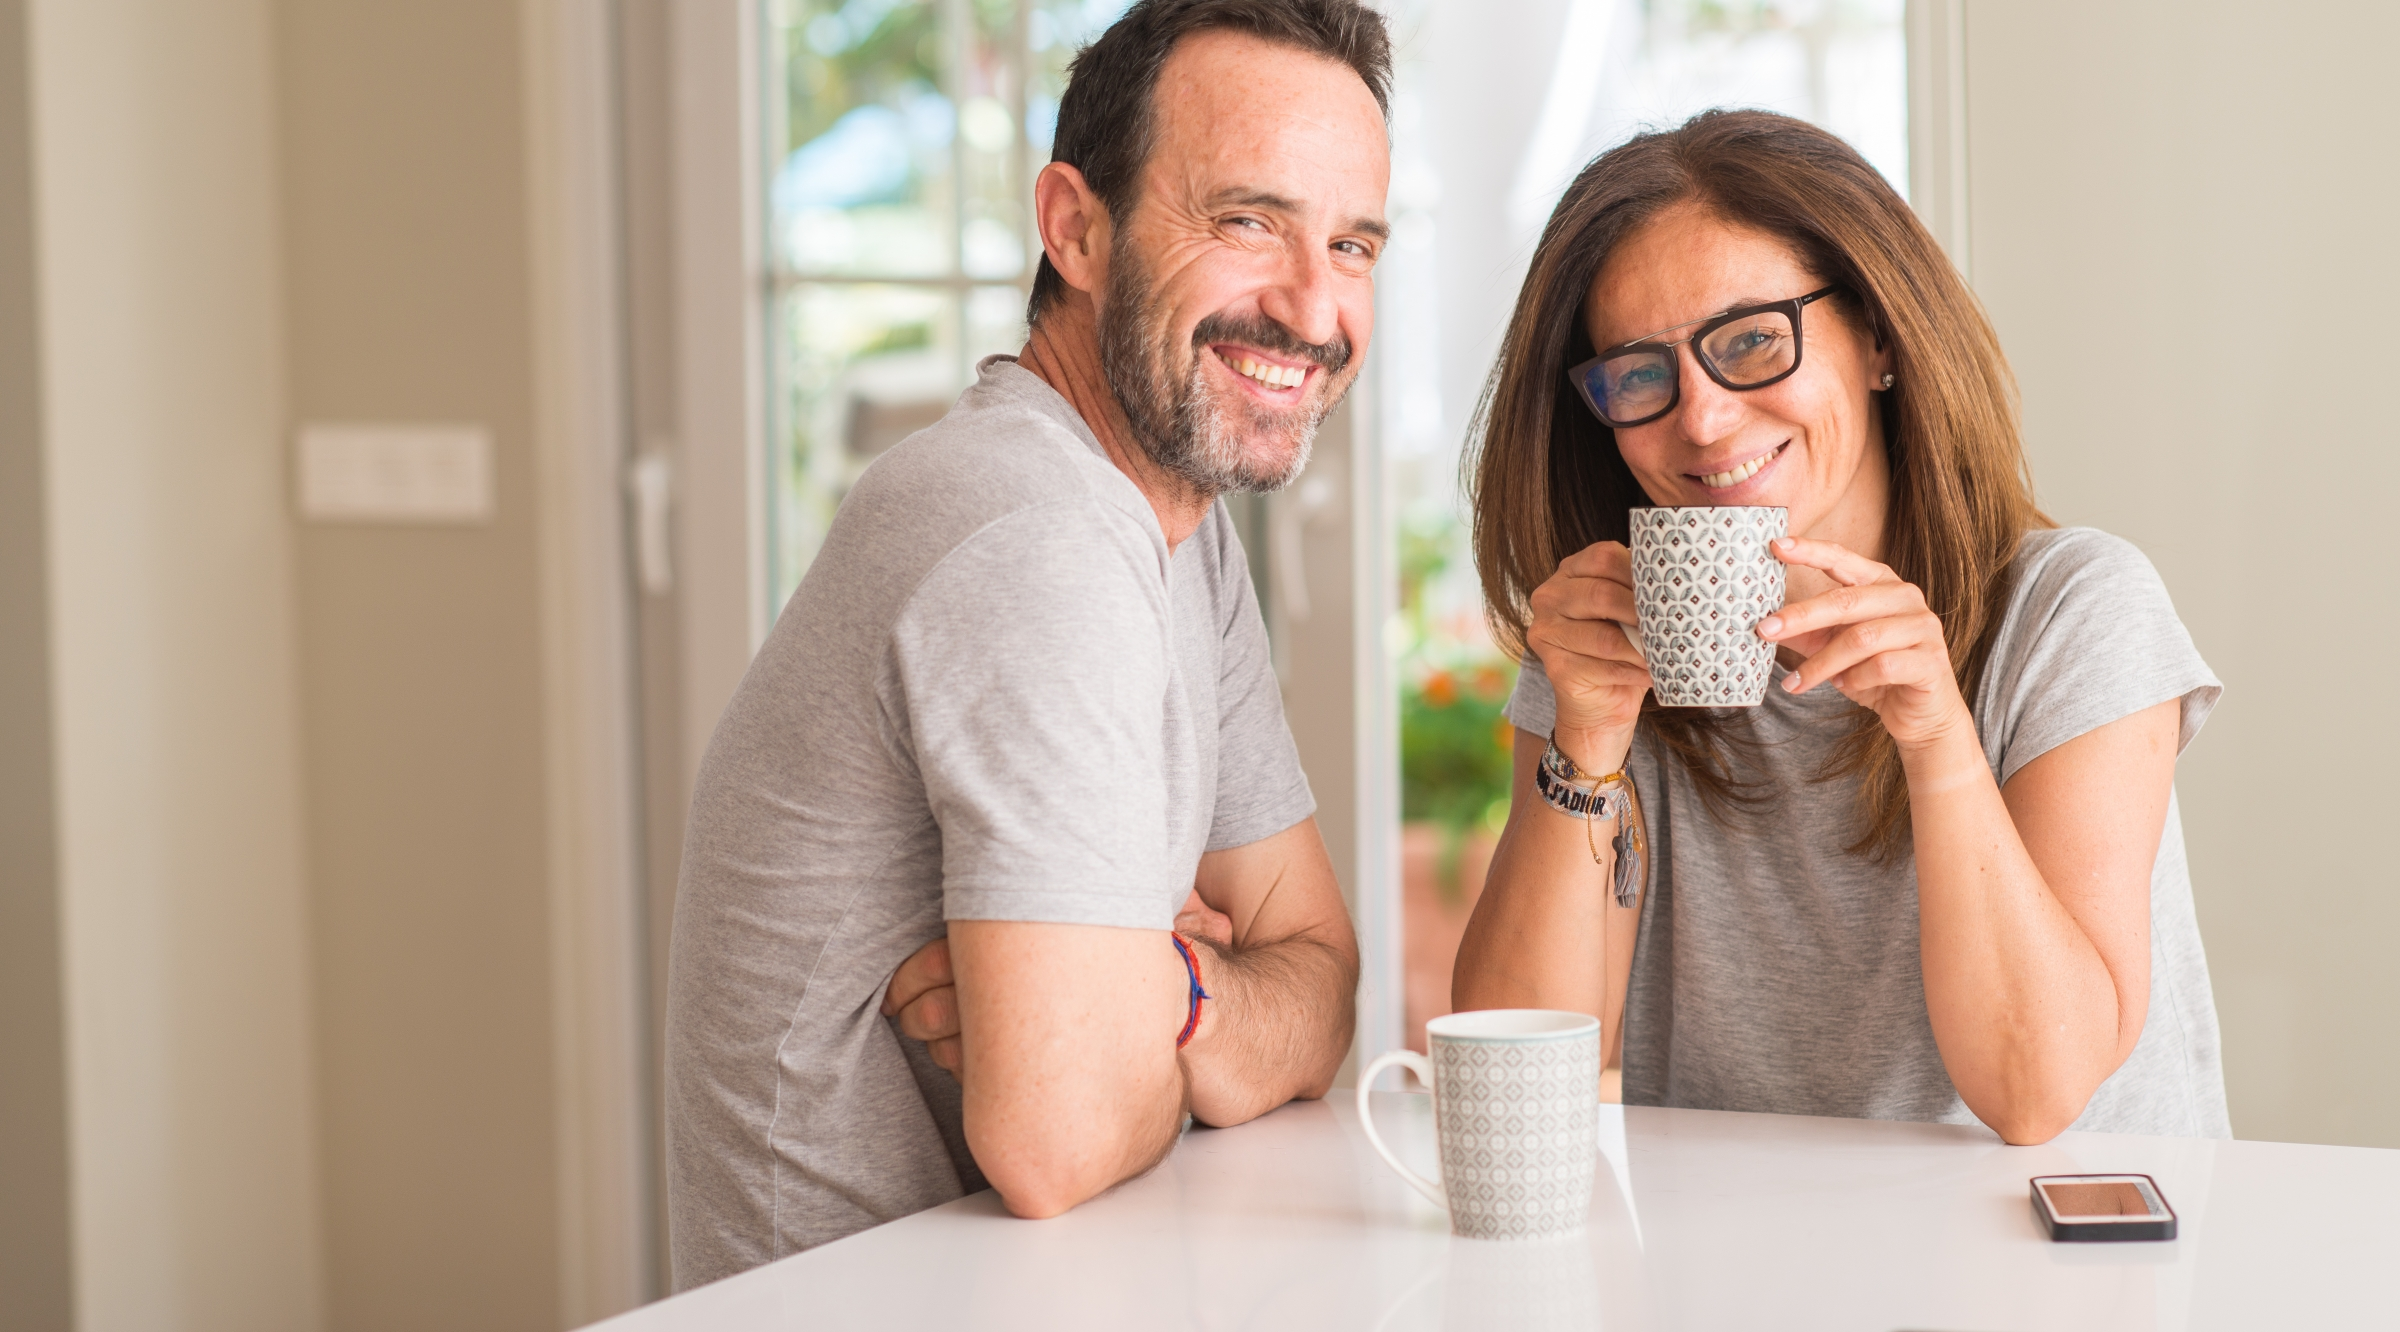 Middle Aged Couple Smiling and Drinking Coffee